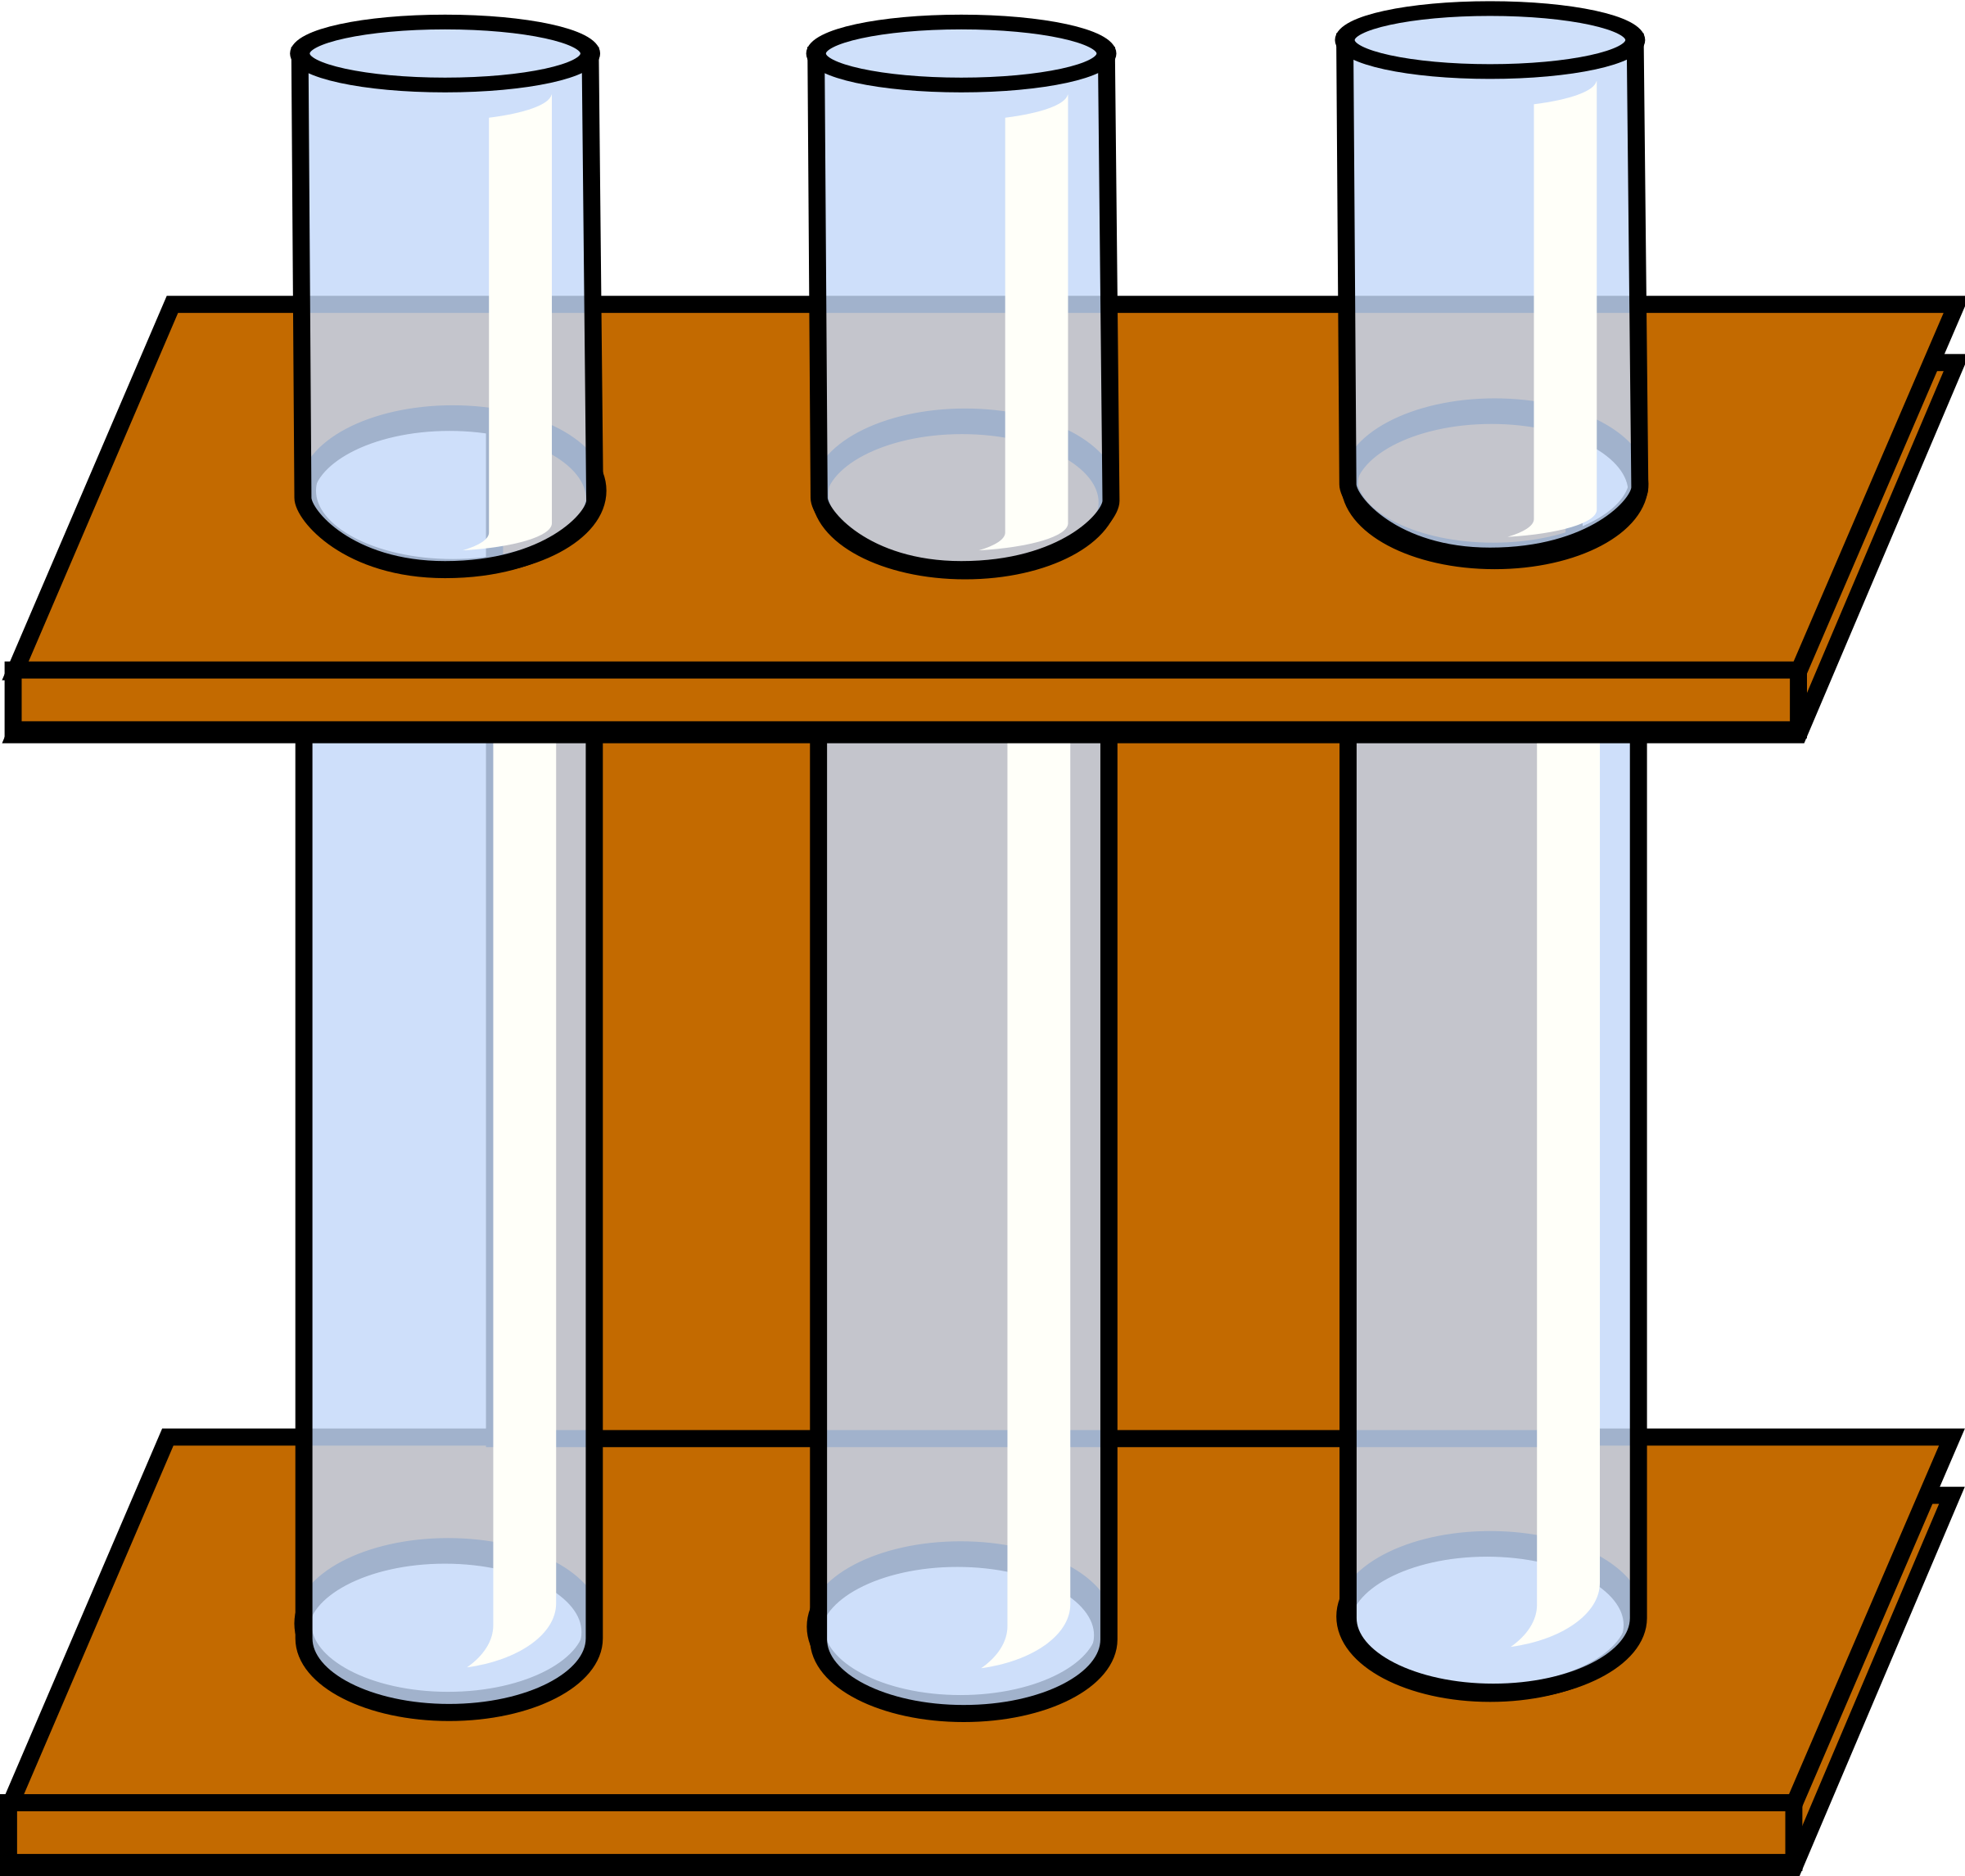 Test tube rack clipart.